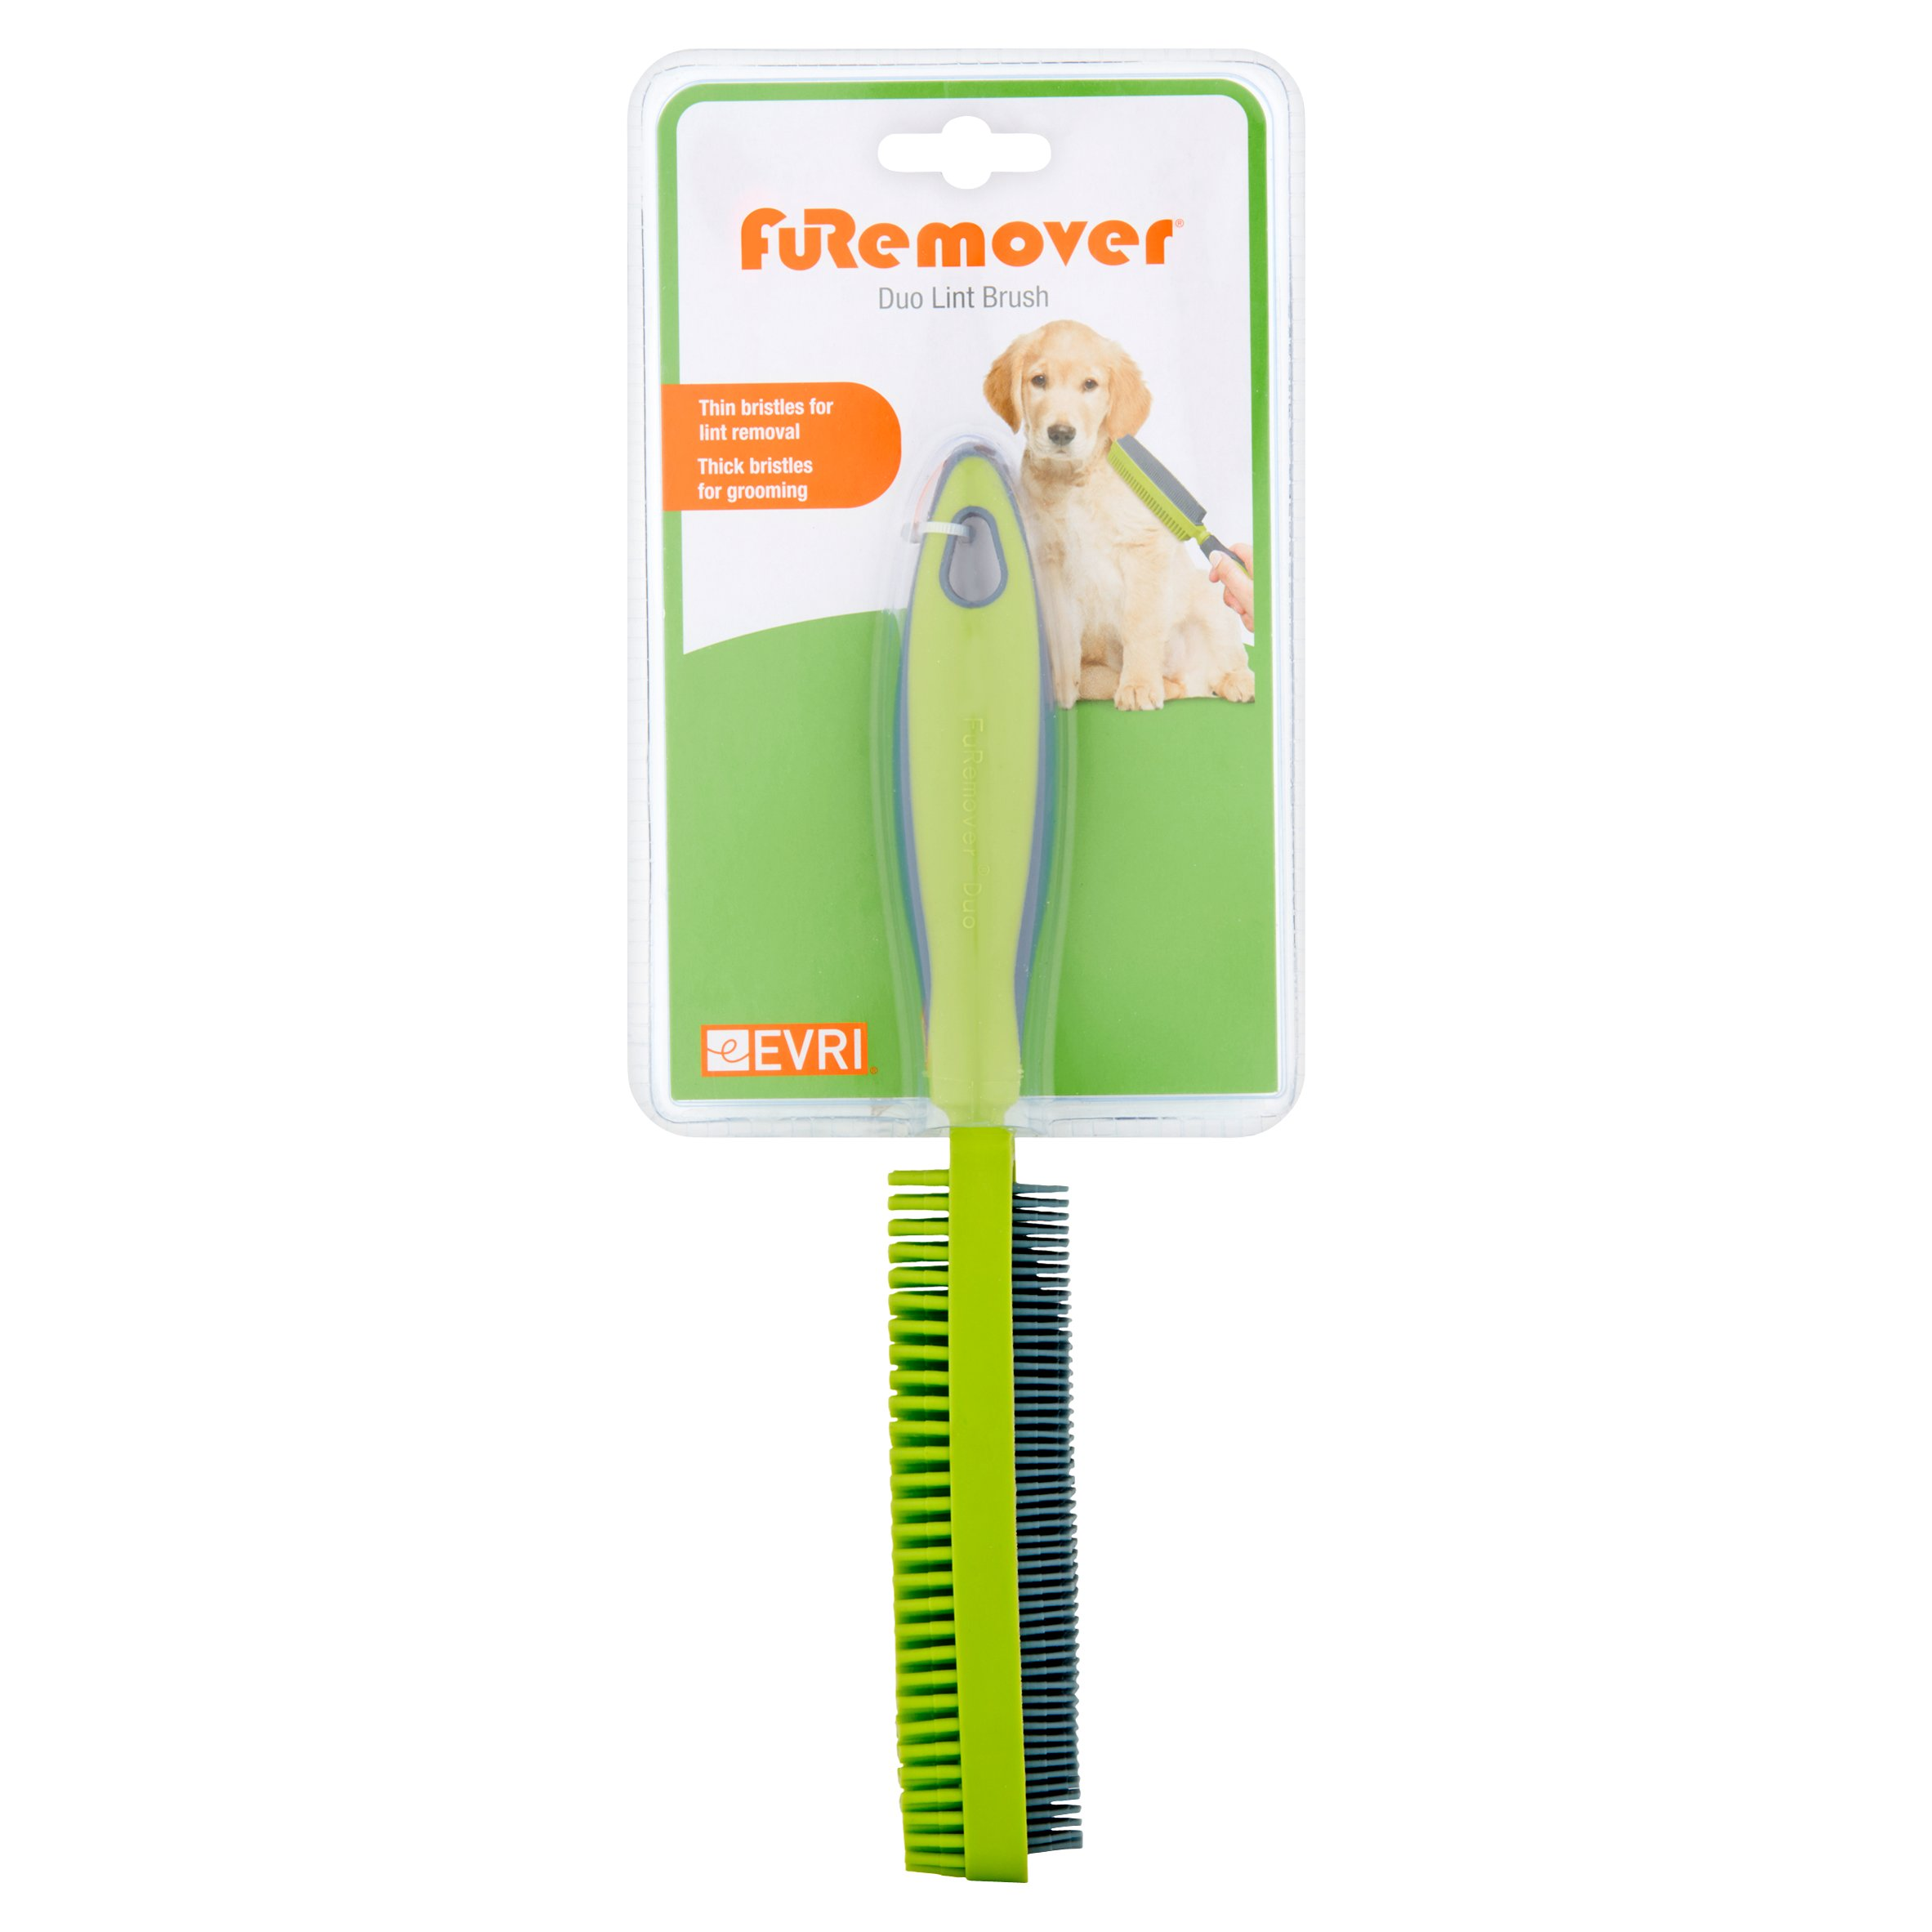 Evri Furemover Duo Lint Brush - Color May Vary